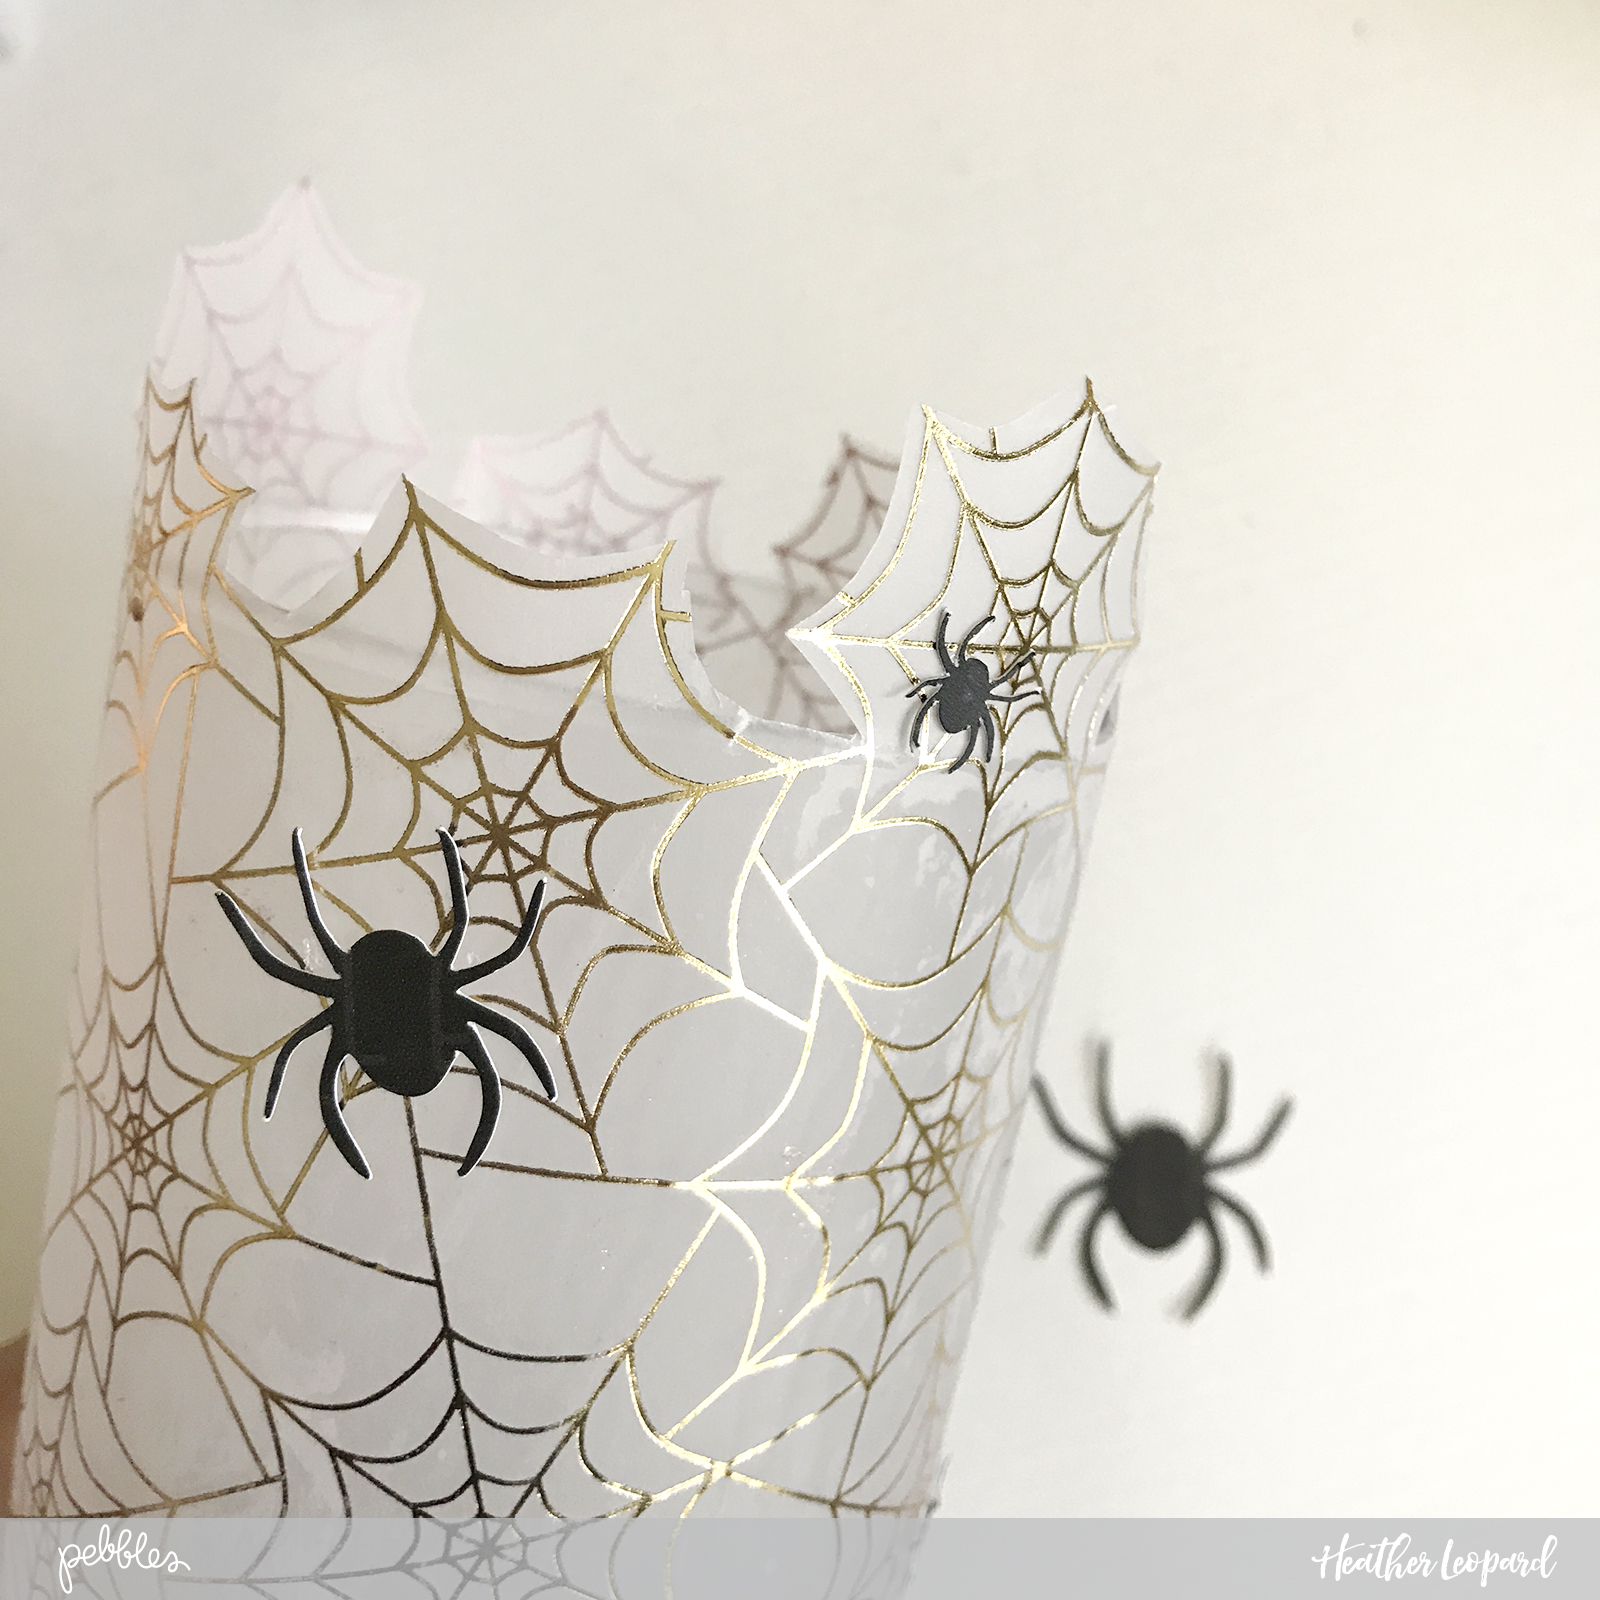 DIY Candle Decor by @heatherleopard using @pebblesinc #MidnightHaunting #DIY #Halloween #madewithpebbles #heatherleopard #halloweendecor